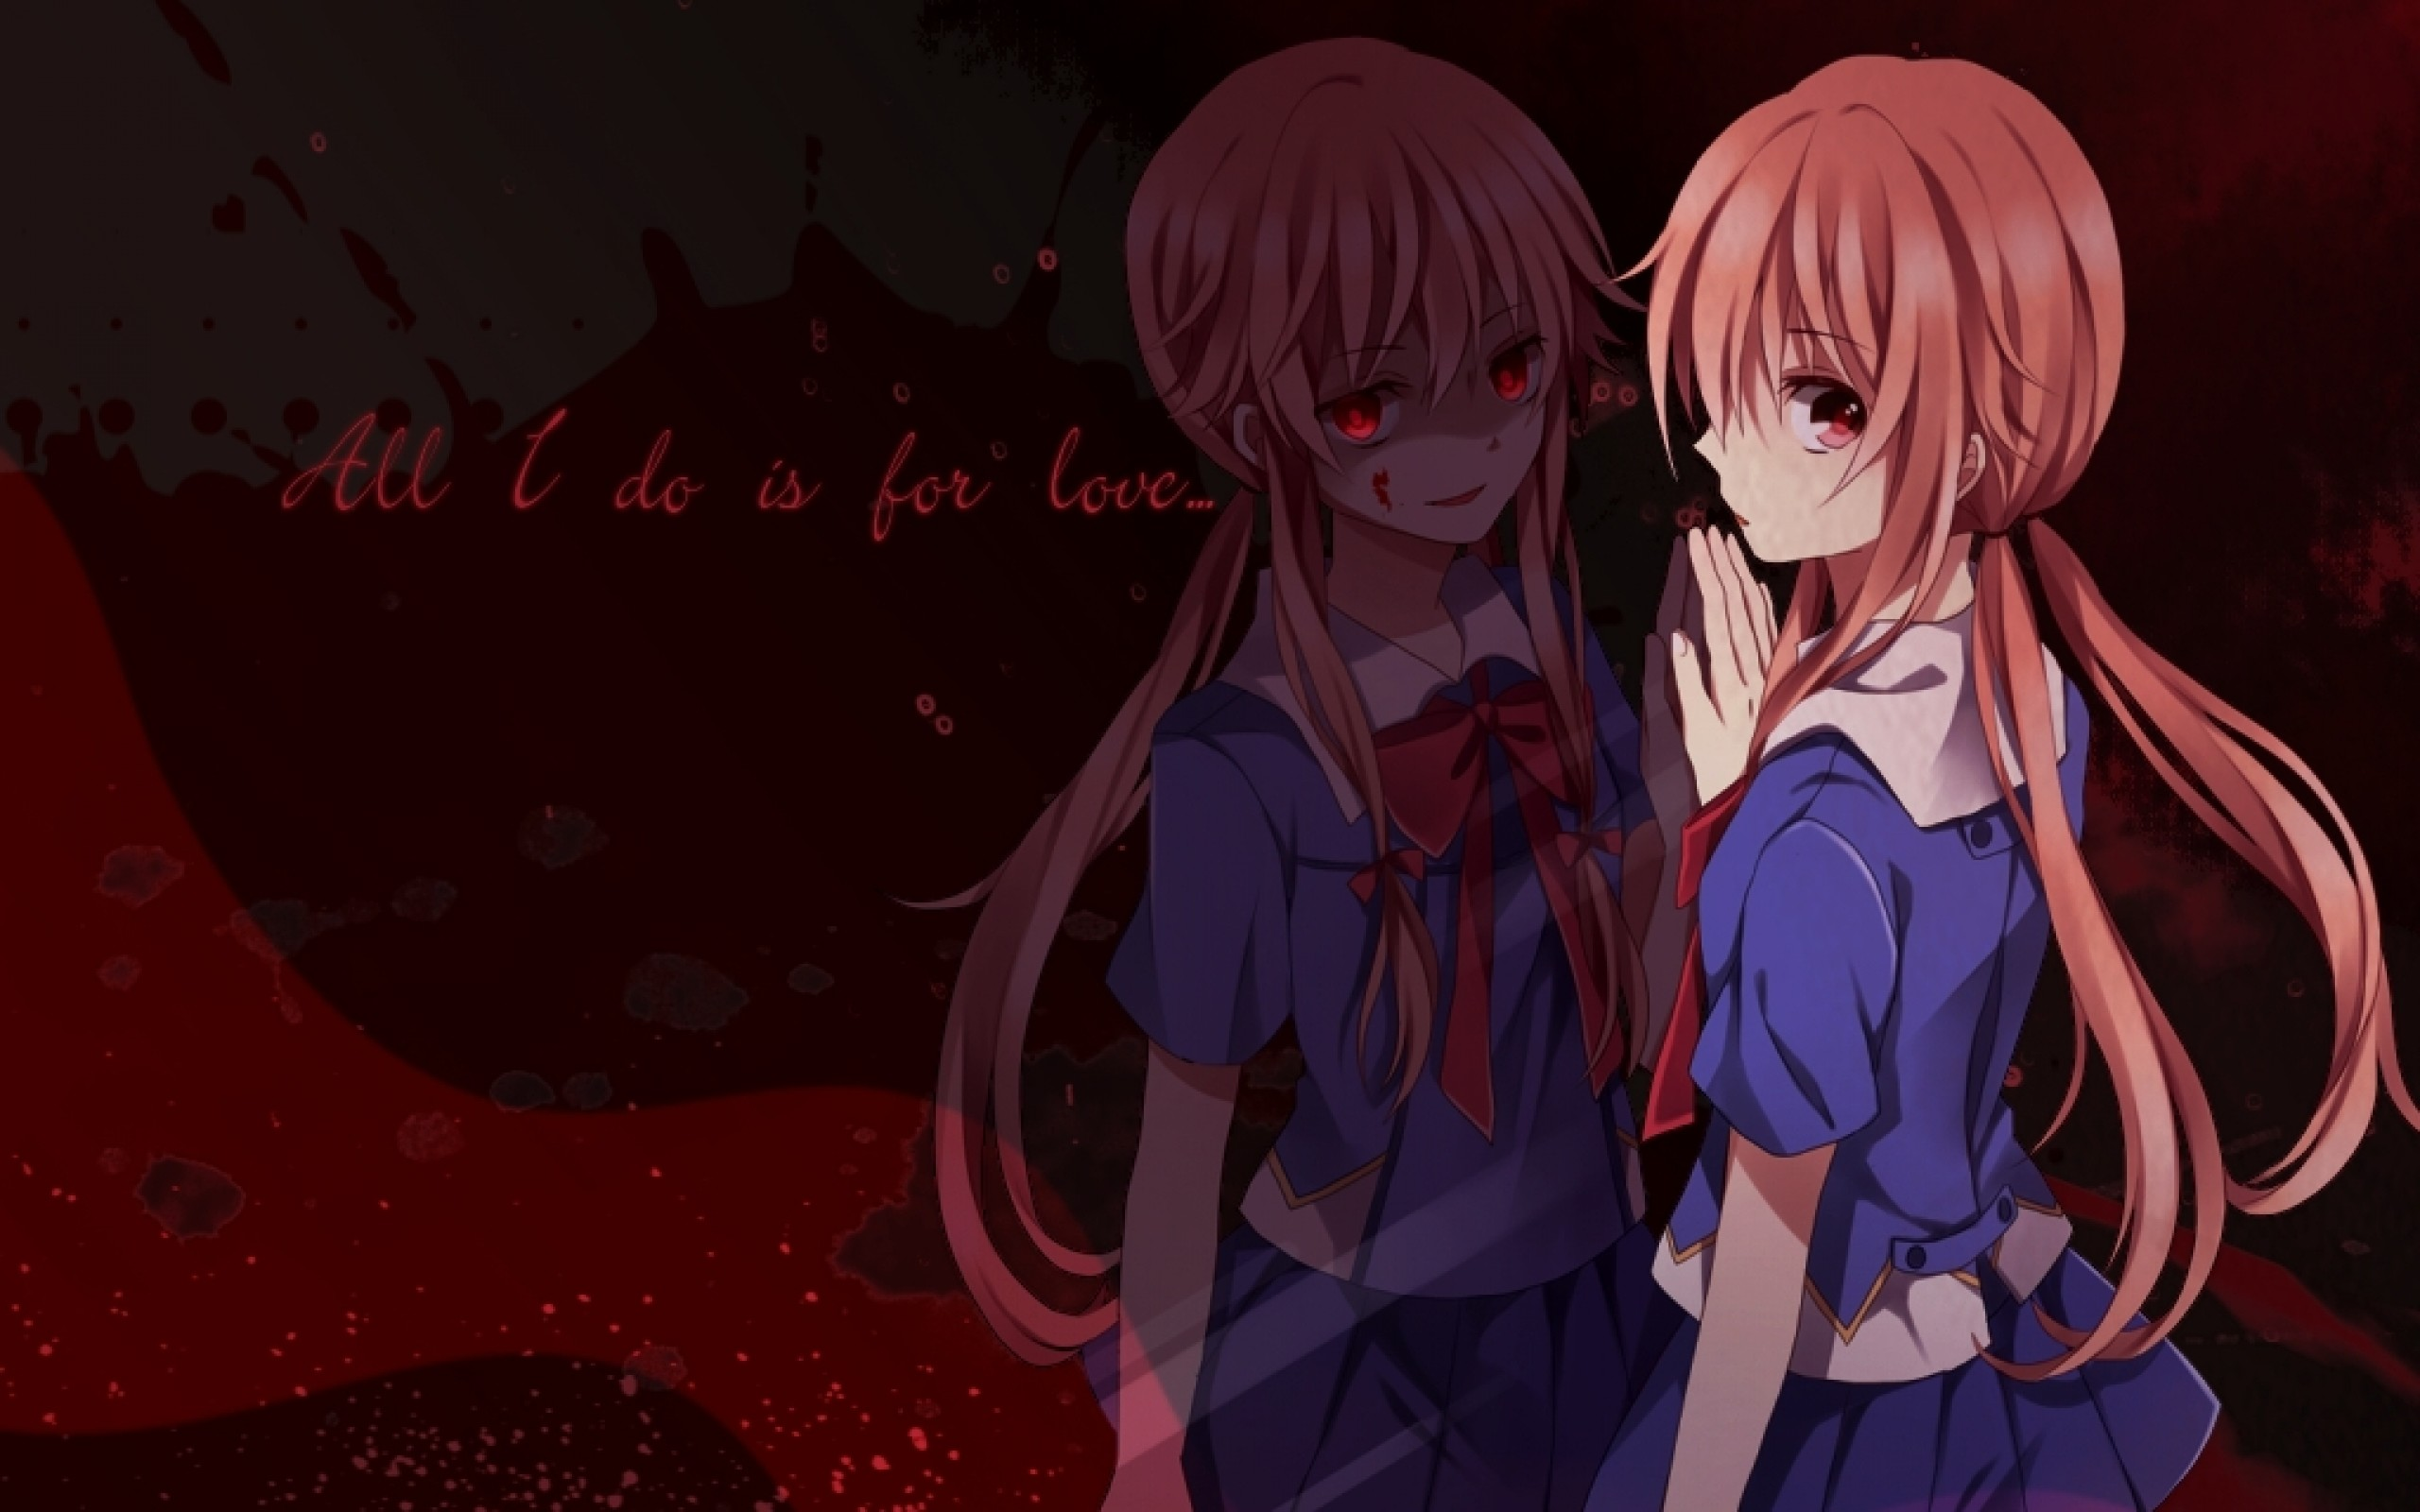 2560x1600 Creative Arts, Black, Manga, Art, Yuno Gasai Wallpaper in   Resolution